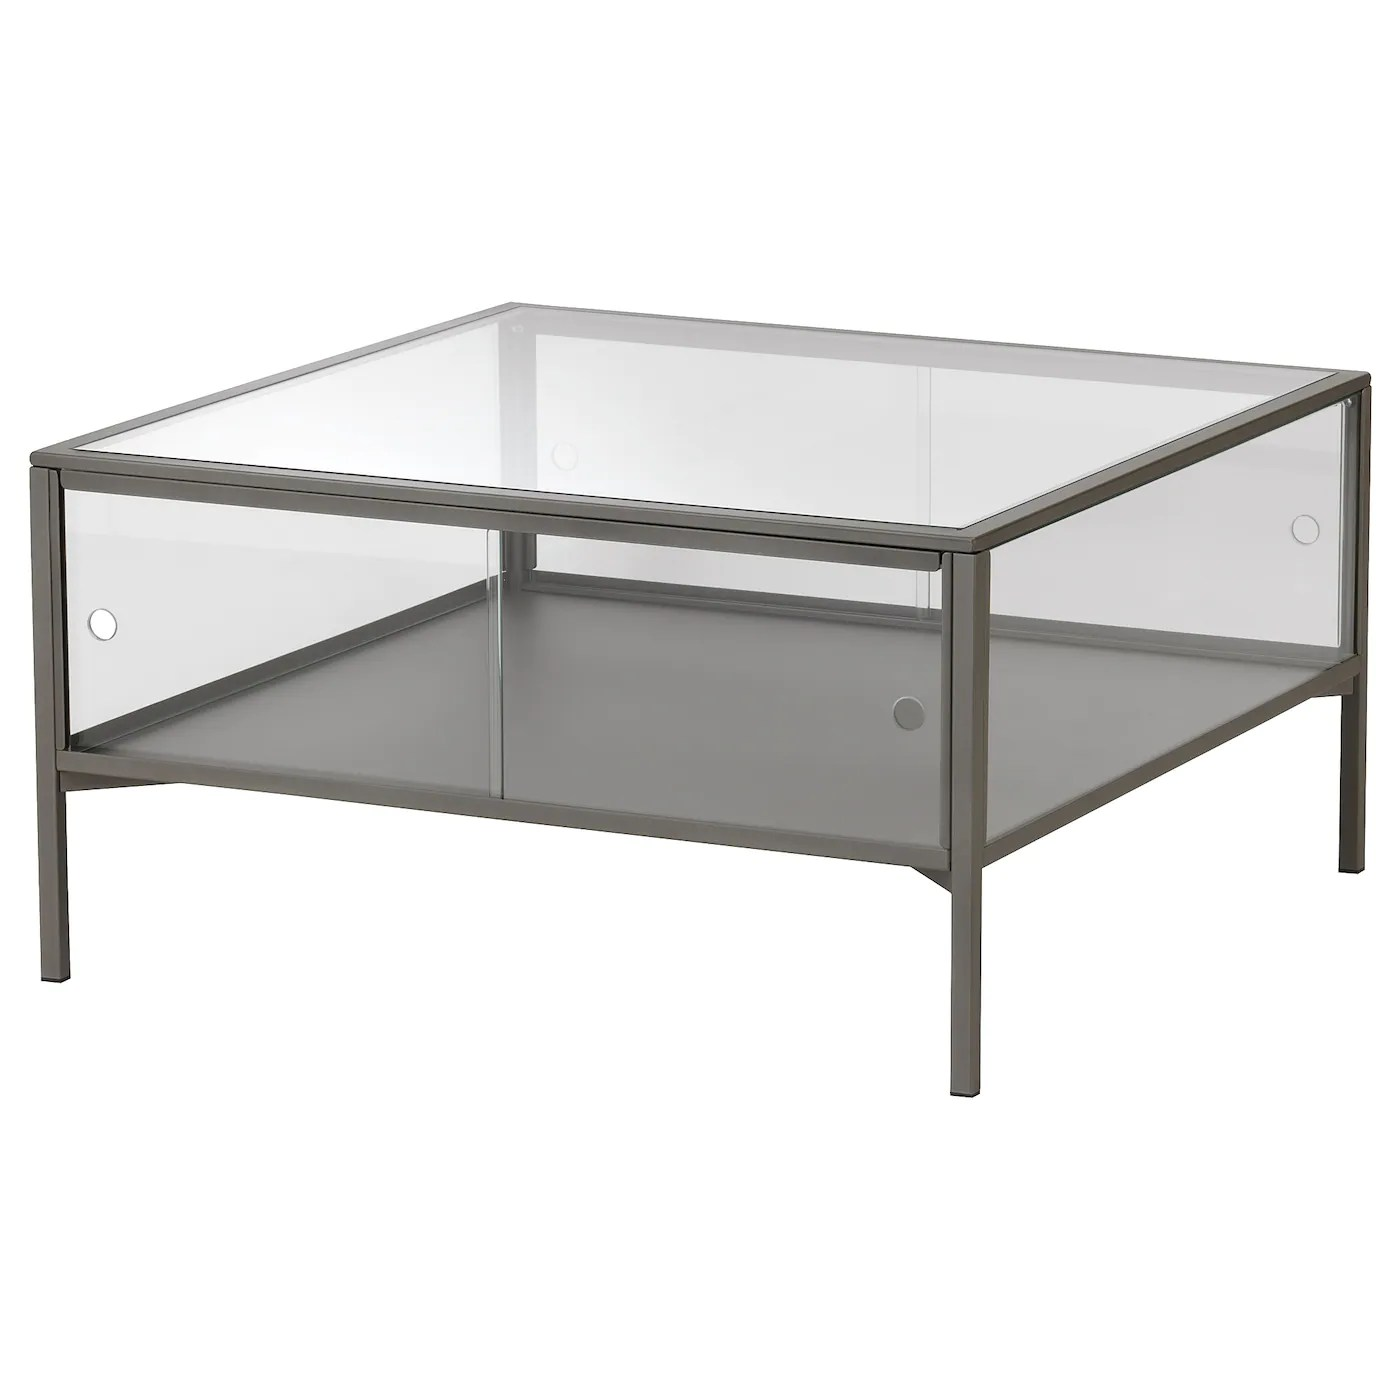 Ikea Couchtisch Mit Glas Question: Would This Ikea Sammanhang Coffee Table Be Able To Fit The 7783 Batcave In It? : Lego